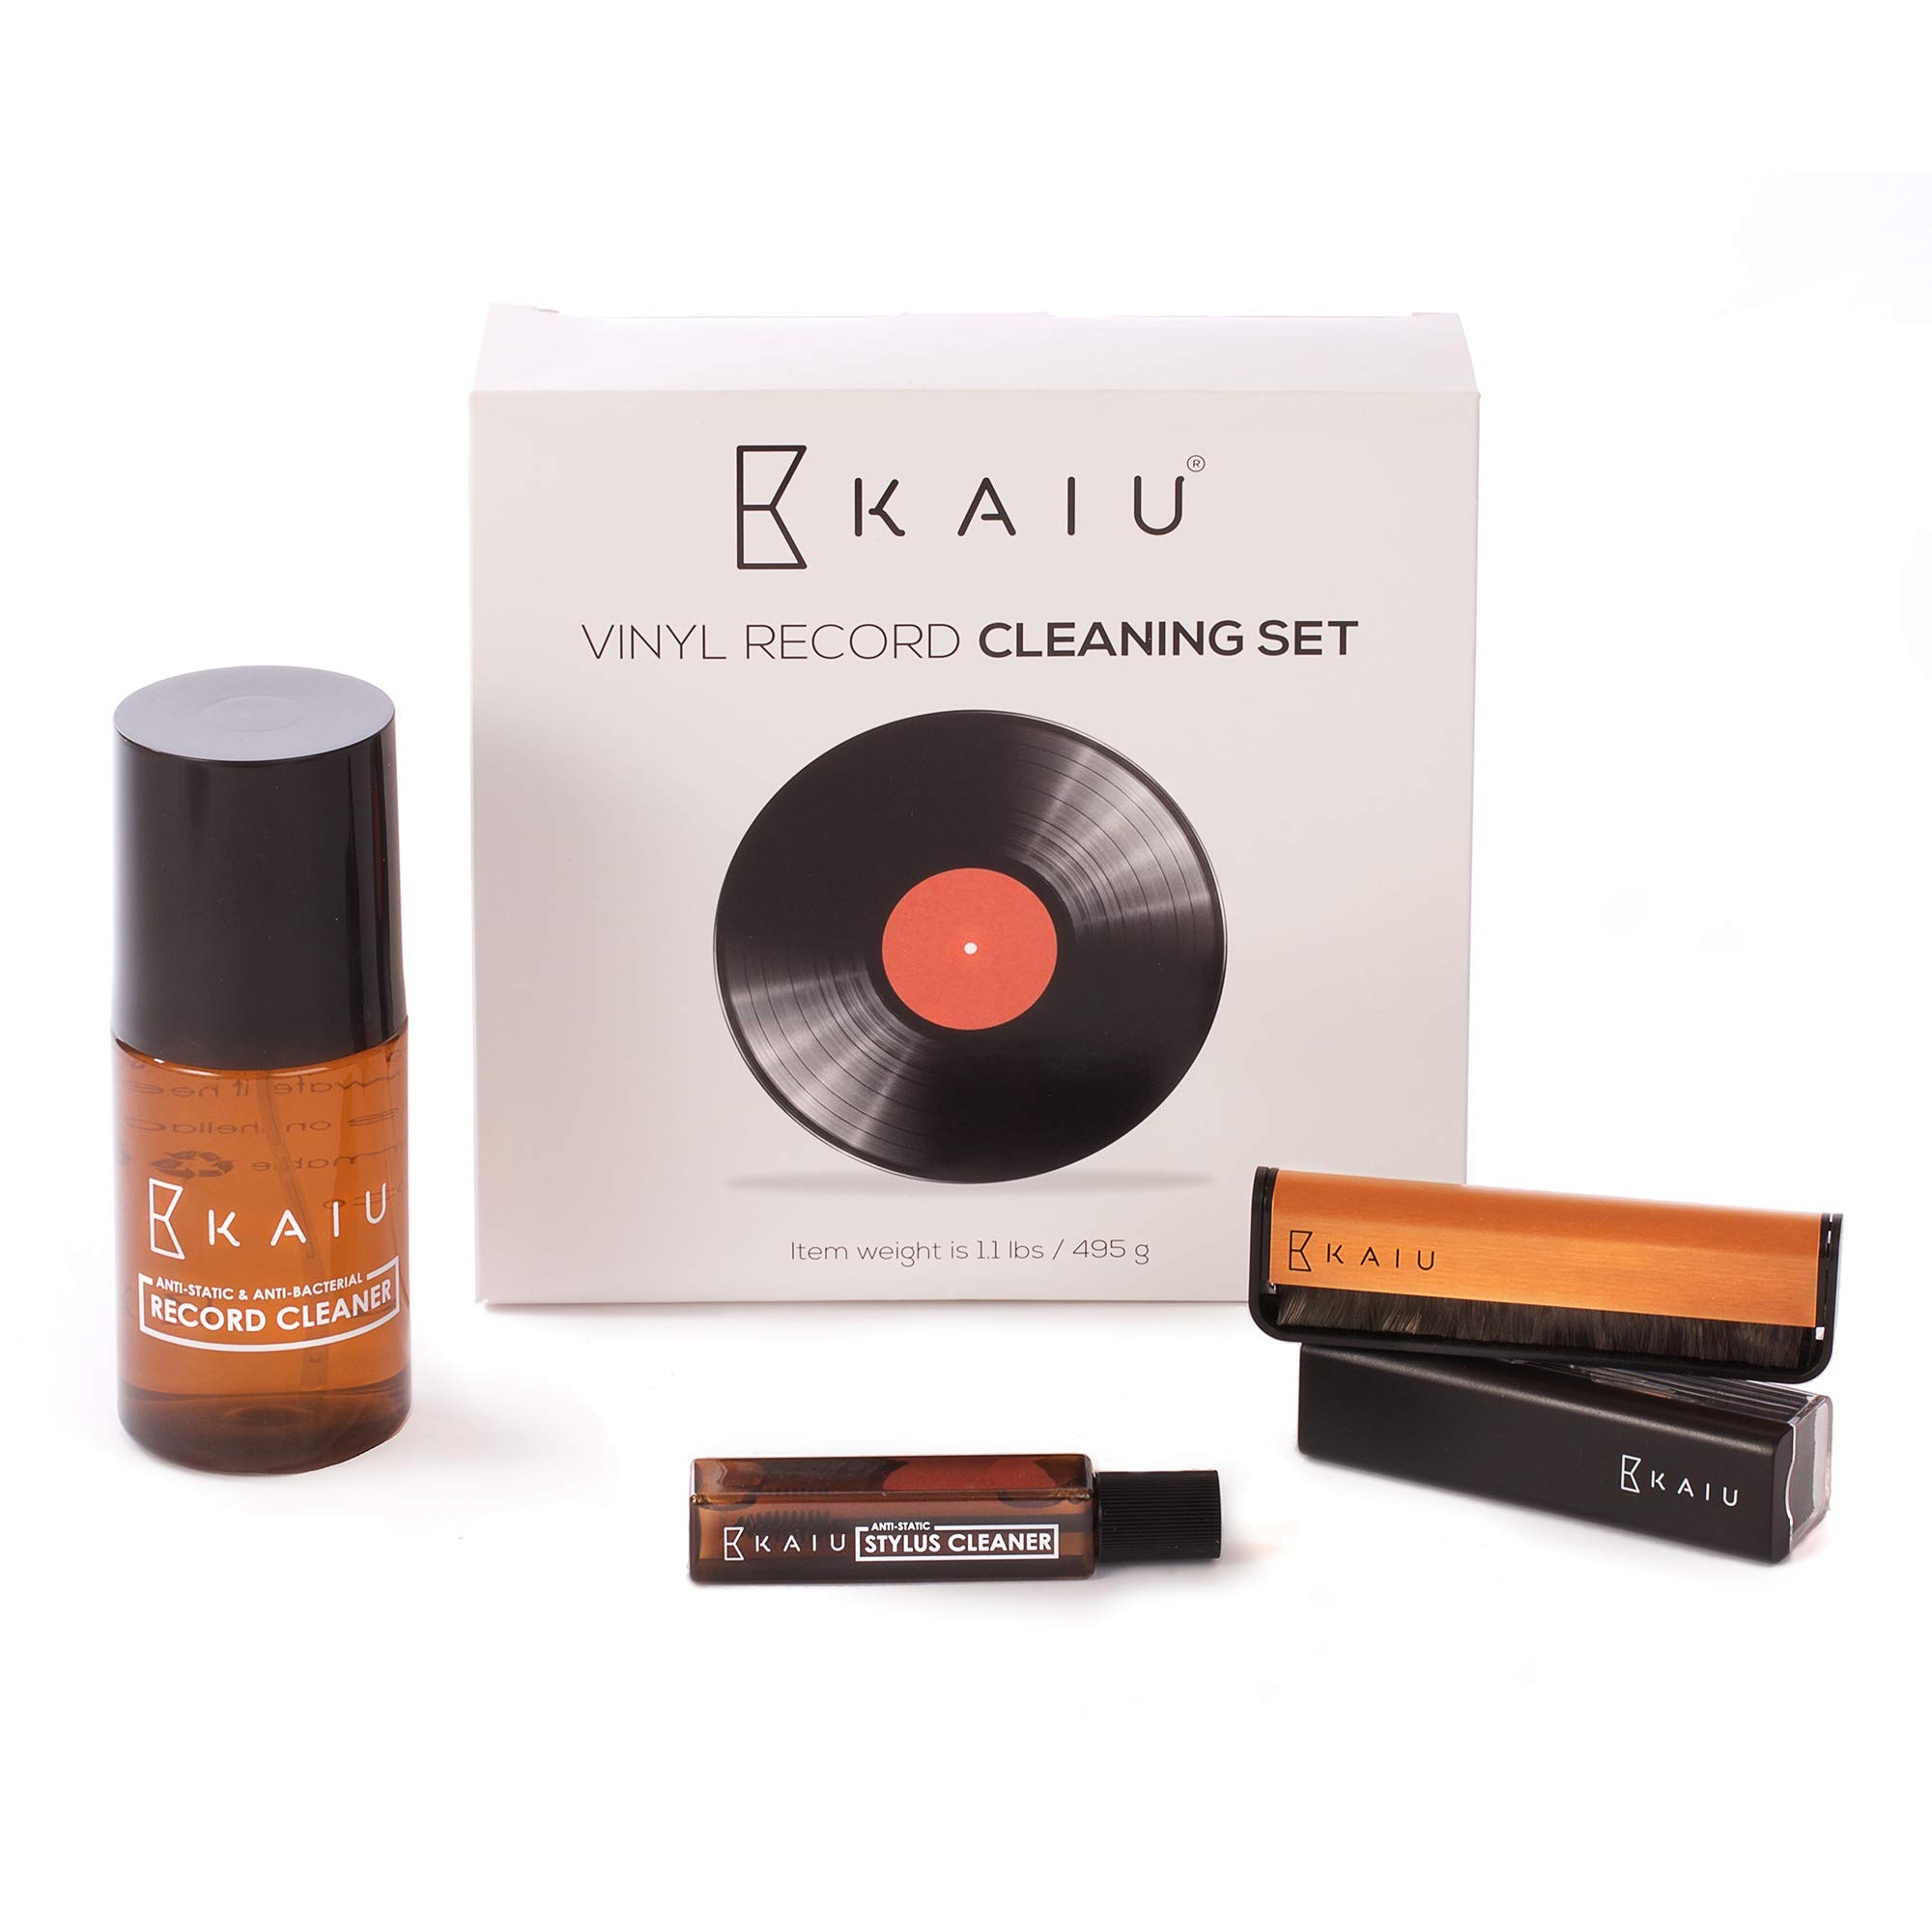 Vinyl Record Cleaning Kit by KAIU - 5-in-1 Record Cleaning Solution, Stylus Cleaner, Carbon and Velvet Brush & Microfiber Cloth - Premium LP Maintenance Set to Keep Your Vinyl Records Like New by KAIU